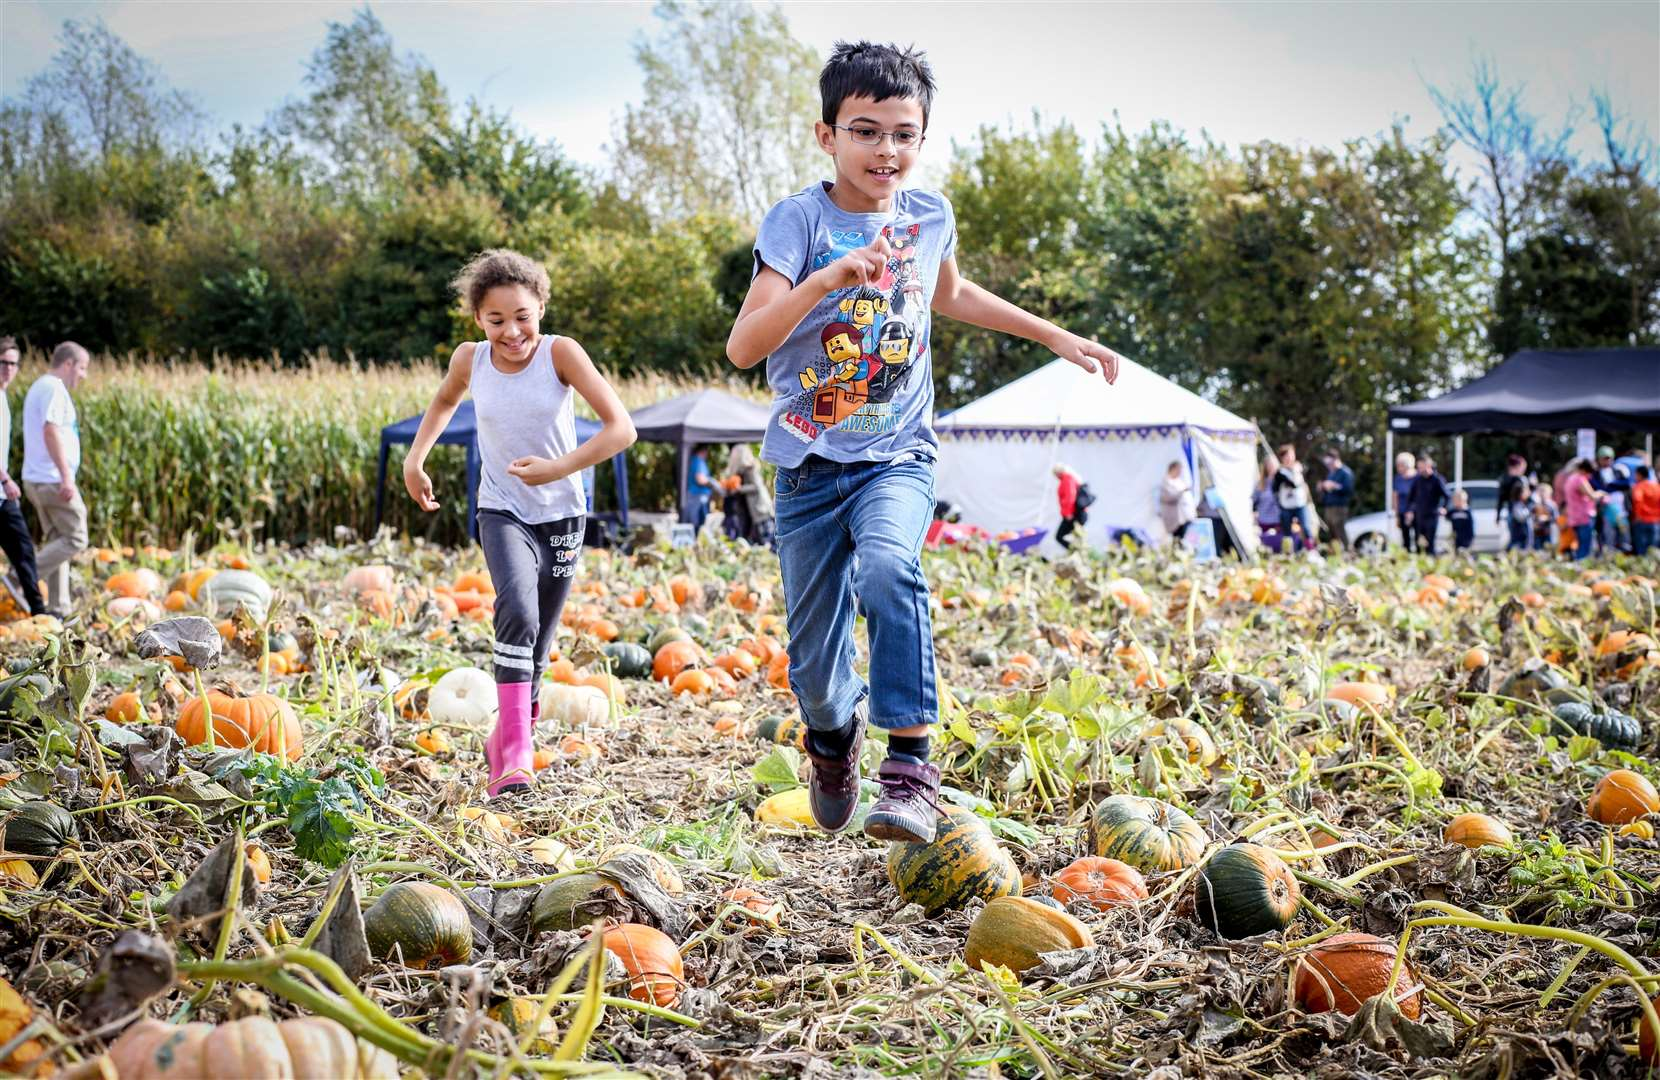 Pick Your Own at Pumpkin Moon last year. Franklin Ram, 8, and Imogen Jones, 8, run through the field. Picture: Matthew Walker